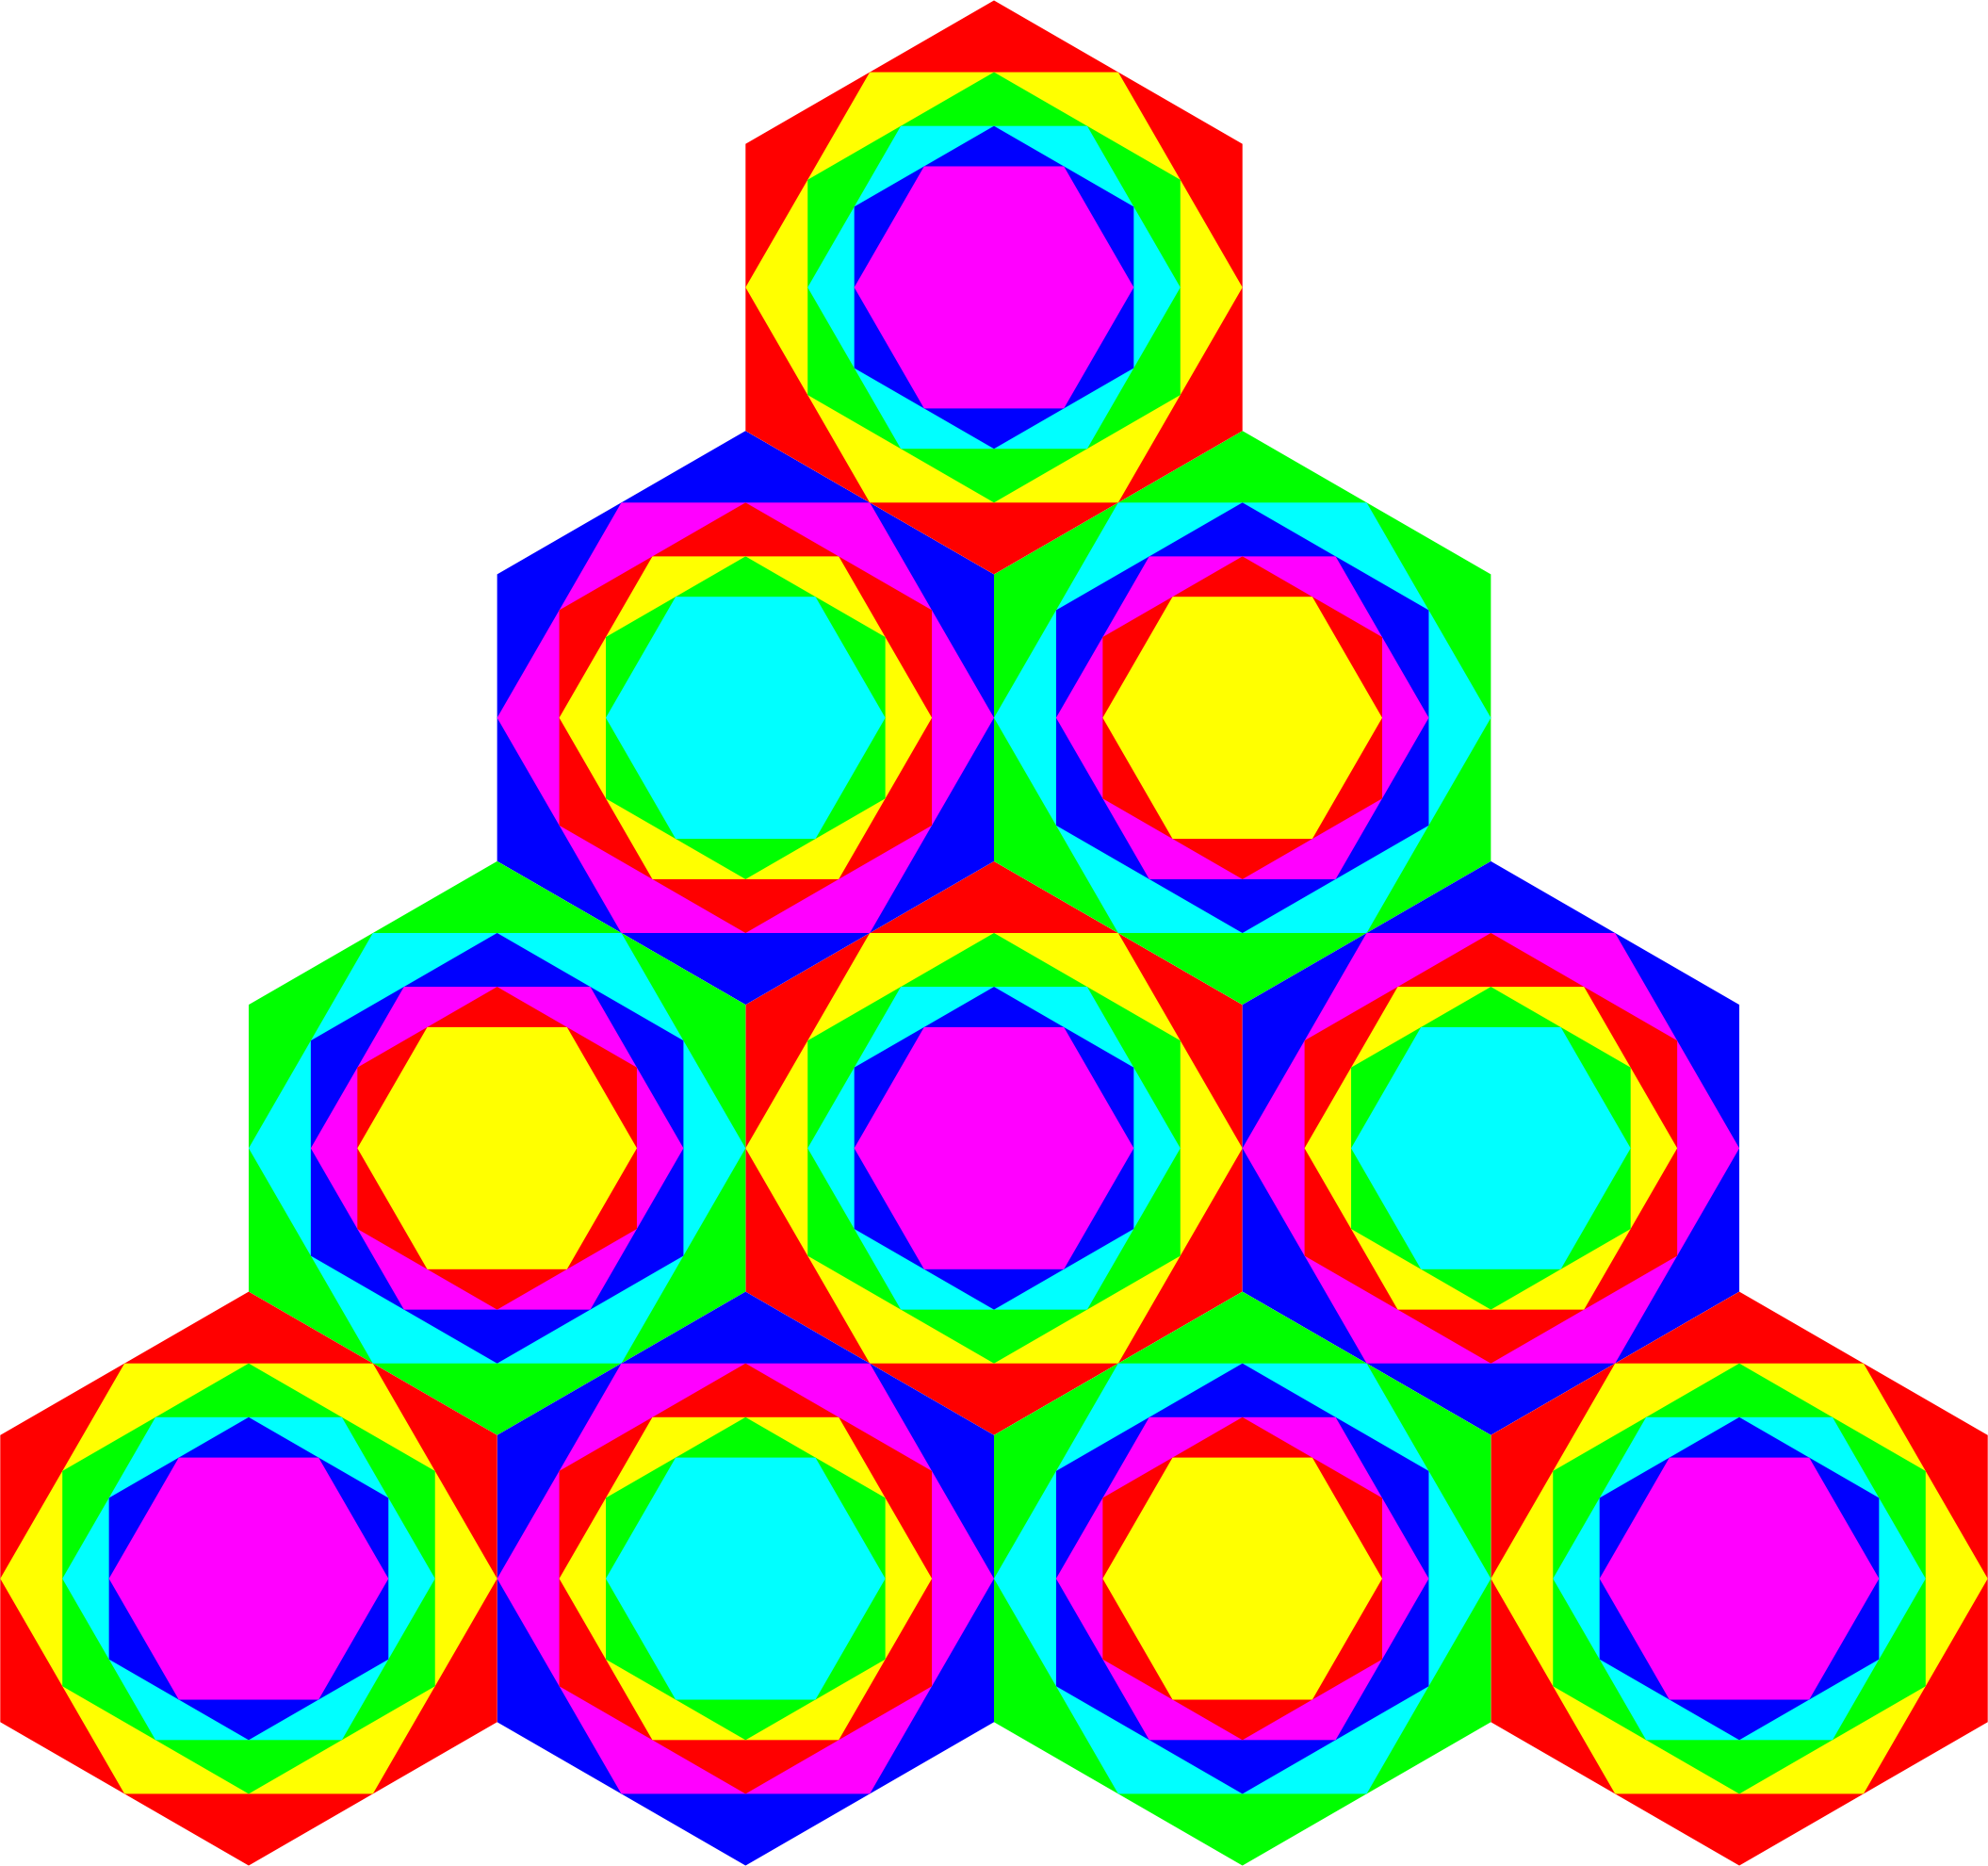 Triangle of Hexagons by 10binary